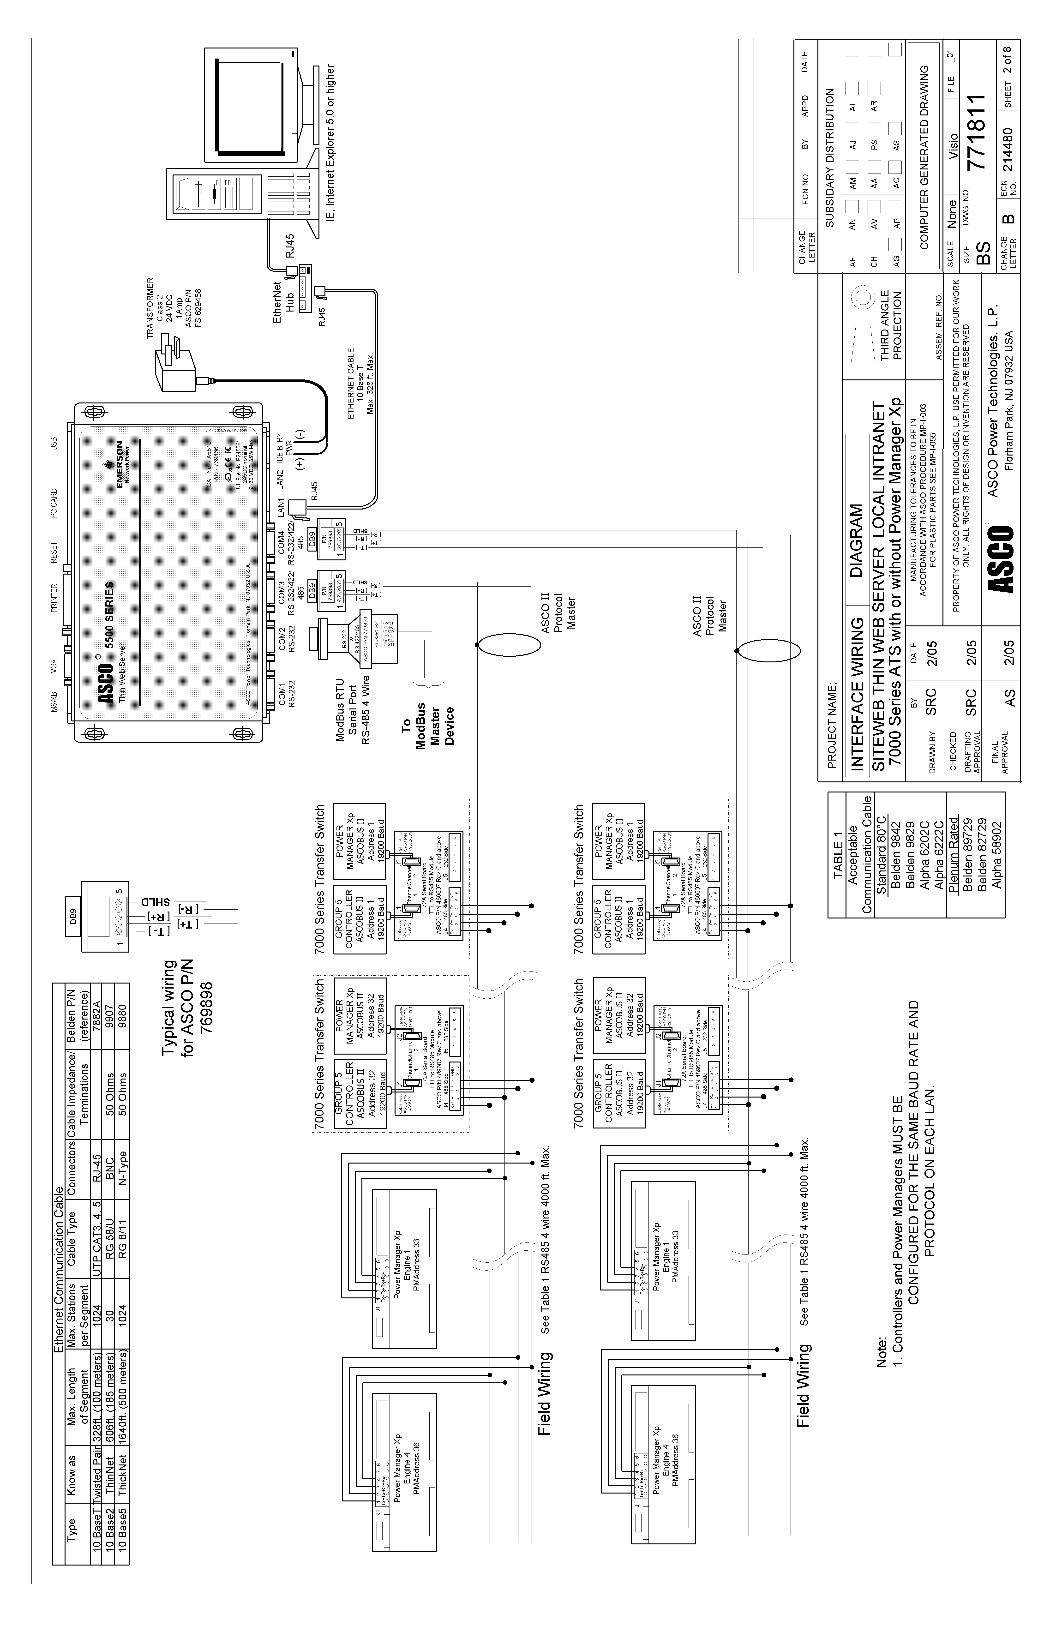 asco transfer switch wiring diagram wiring diagramasco automatic transfer switch series 300 wiring diagram wiringasco 300 wiring diagram trusted diagrams generac automatic